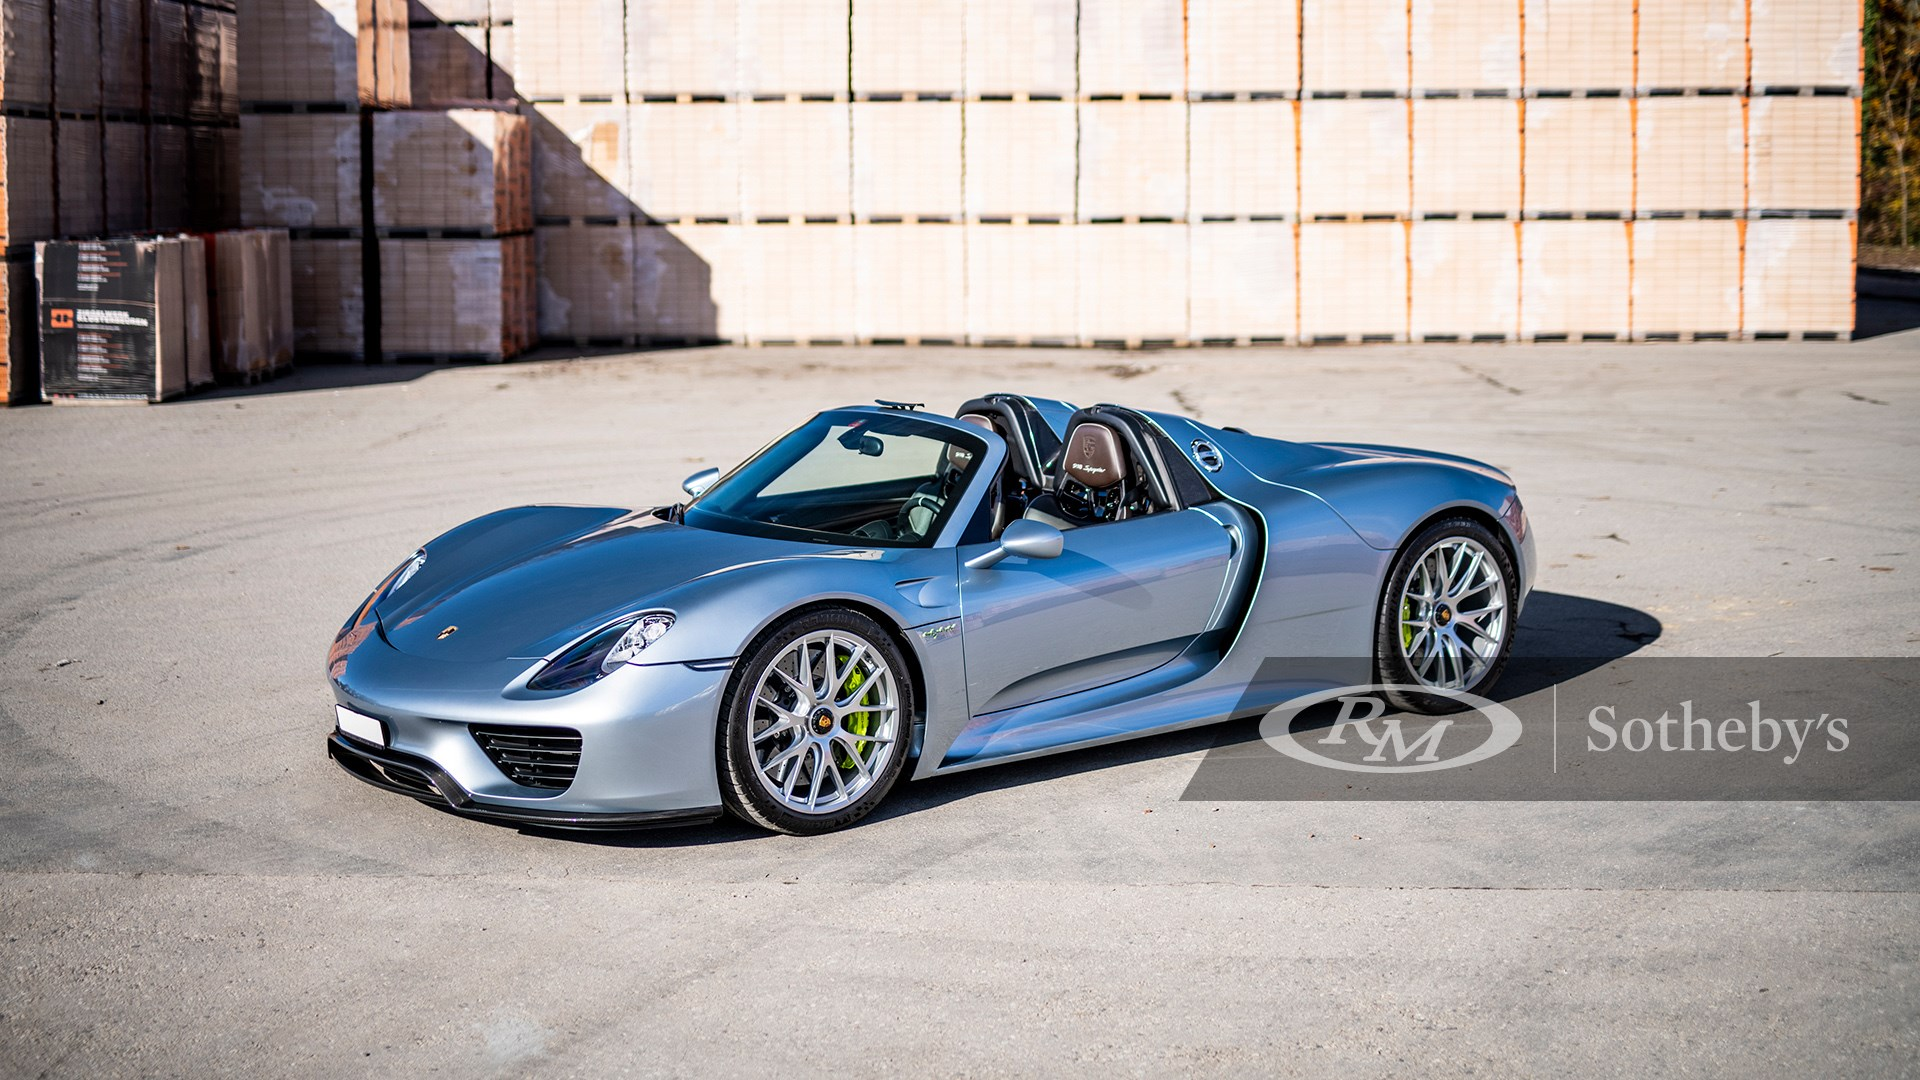 Liquid Chrome Blue Metallic 2015 Porsche 918 Spyder available at RM Sotheby's Online Only Open Roads February Auction 2021